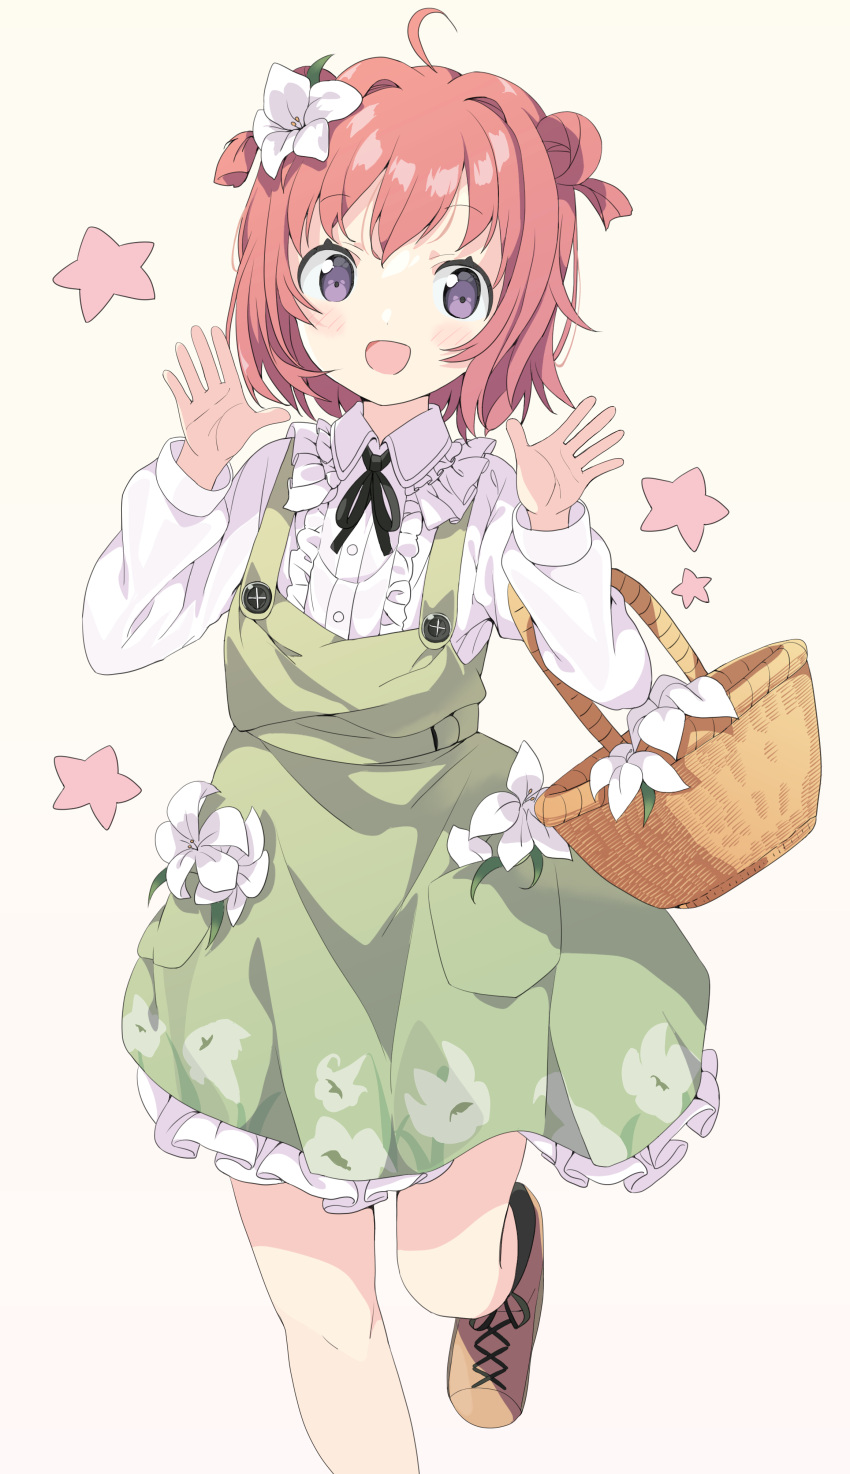 1girl :d absurdres ahoge akaza_akari bangs basket black_legwear blush brown_background brown_footwear brown_hair center_frills collared_shirt commentary_request double_bun dress eyebrows_visible_through_hair flower frilled_dress frilled_shirt frills green_dress hair_flower hair_intakes hair_ornament hands_up highres long_sleeves looking_at_viewer open_mouth revision shirt shoes sleeveless sleeveless_dress smile socks solo standing standing_on_one_leg star_(symbol) tantan_men_(dragon) two_side_up violet_eyes white_flower white_shirt yuru_yuri